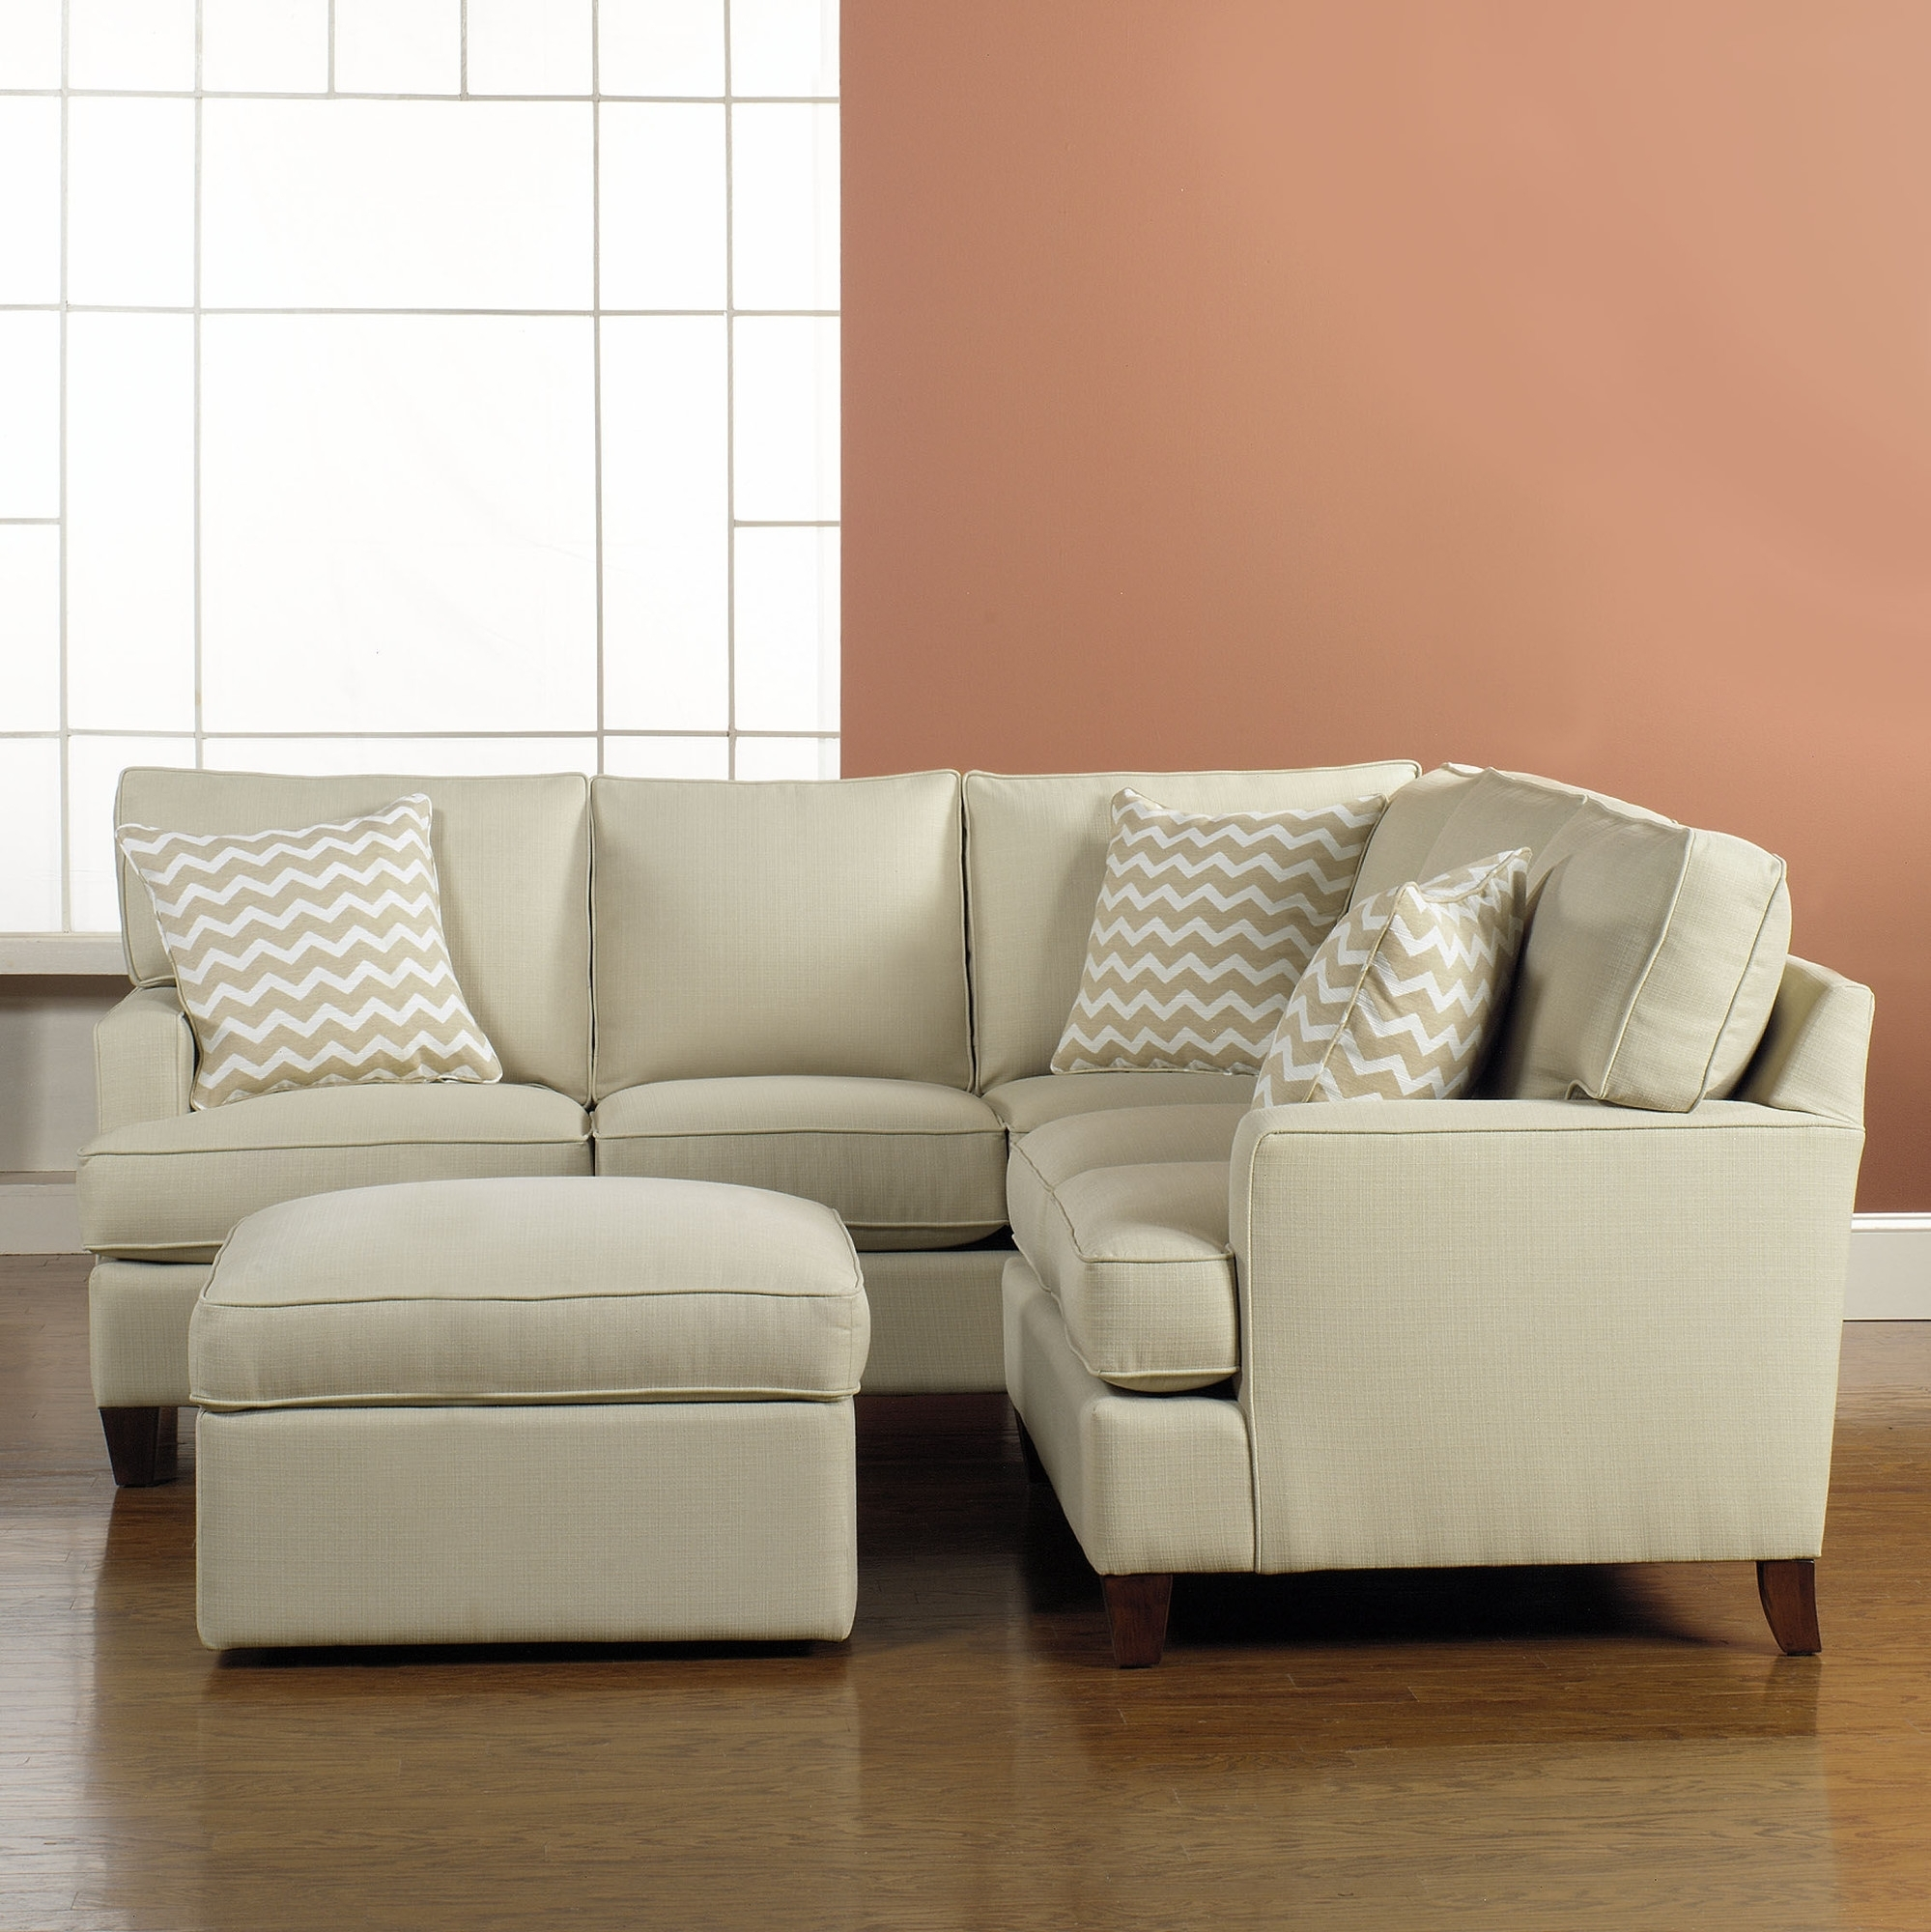 Modern Sofa Sectionals Small Spaces • Sectional Sofa Pertaining To Sectional Sofas For Small Doorways (View 2 of 10)